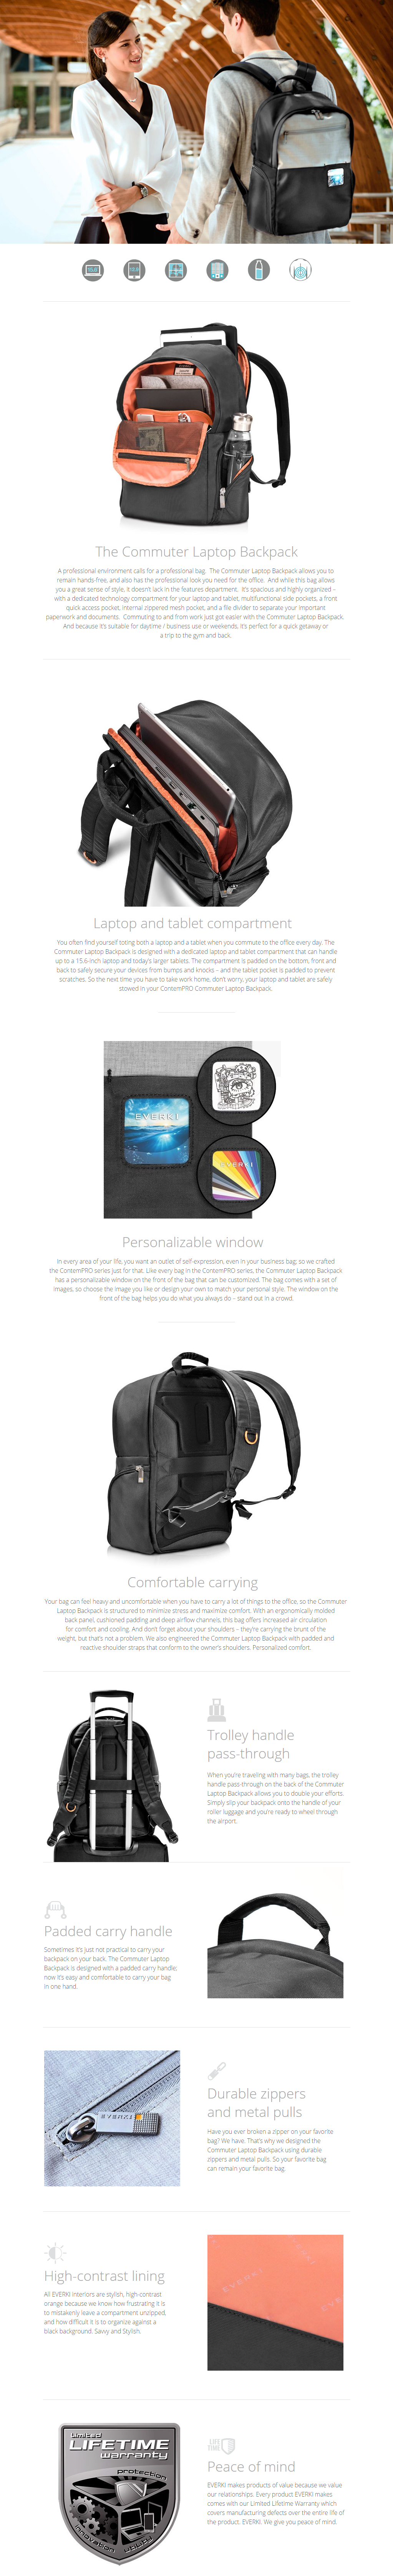 """A large marketing image providing additional information about the product Everki ContemPRO 15.6"""" Laptop Backpack (Black) - Additional alt info not provided"""